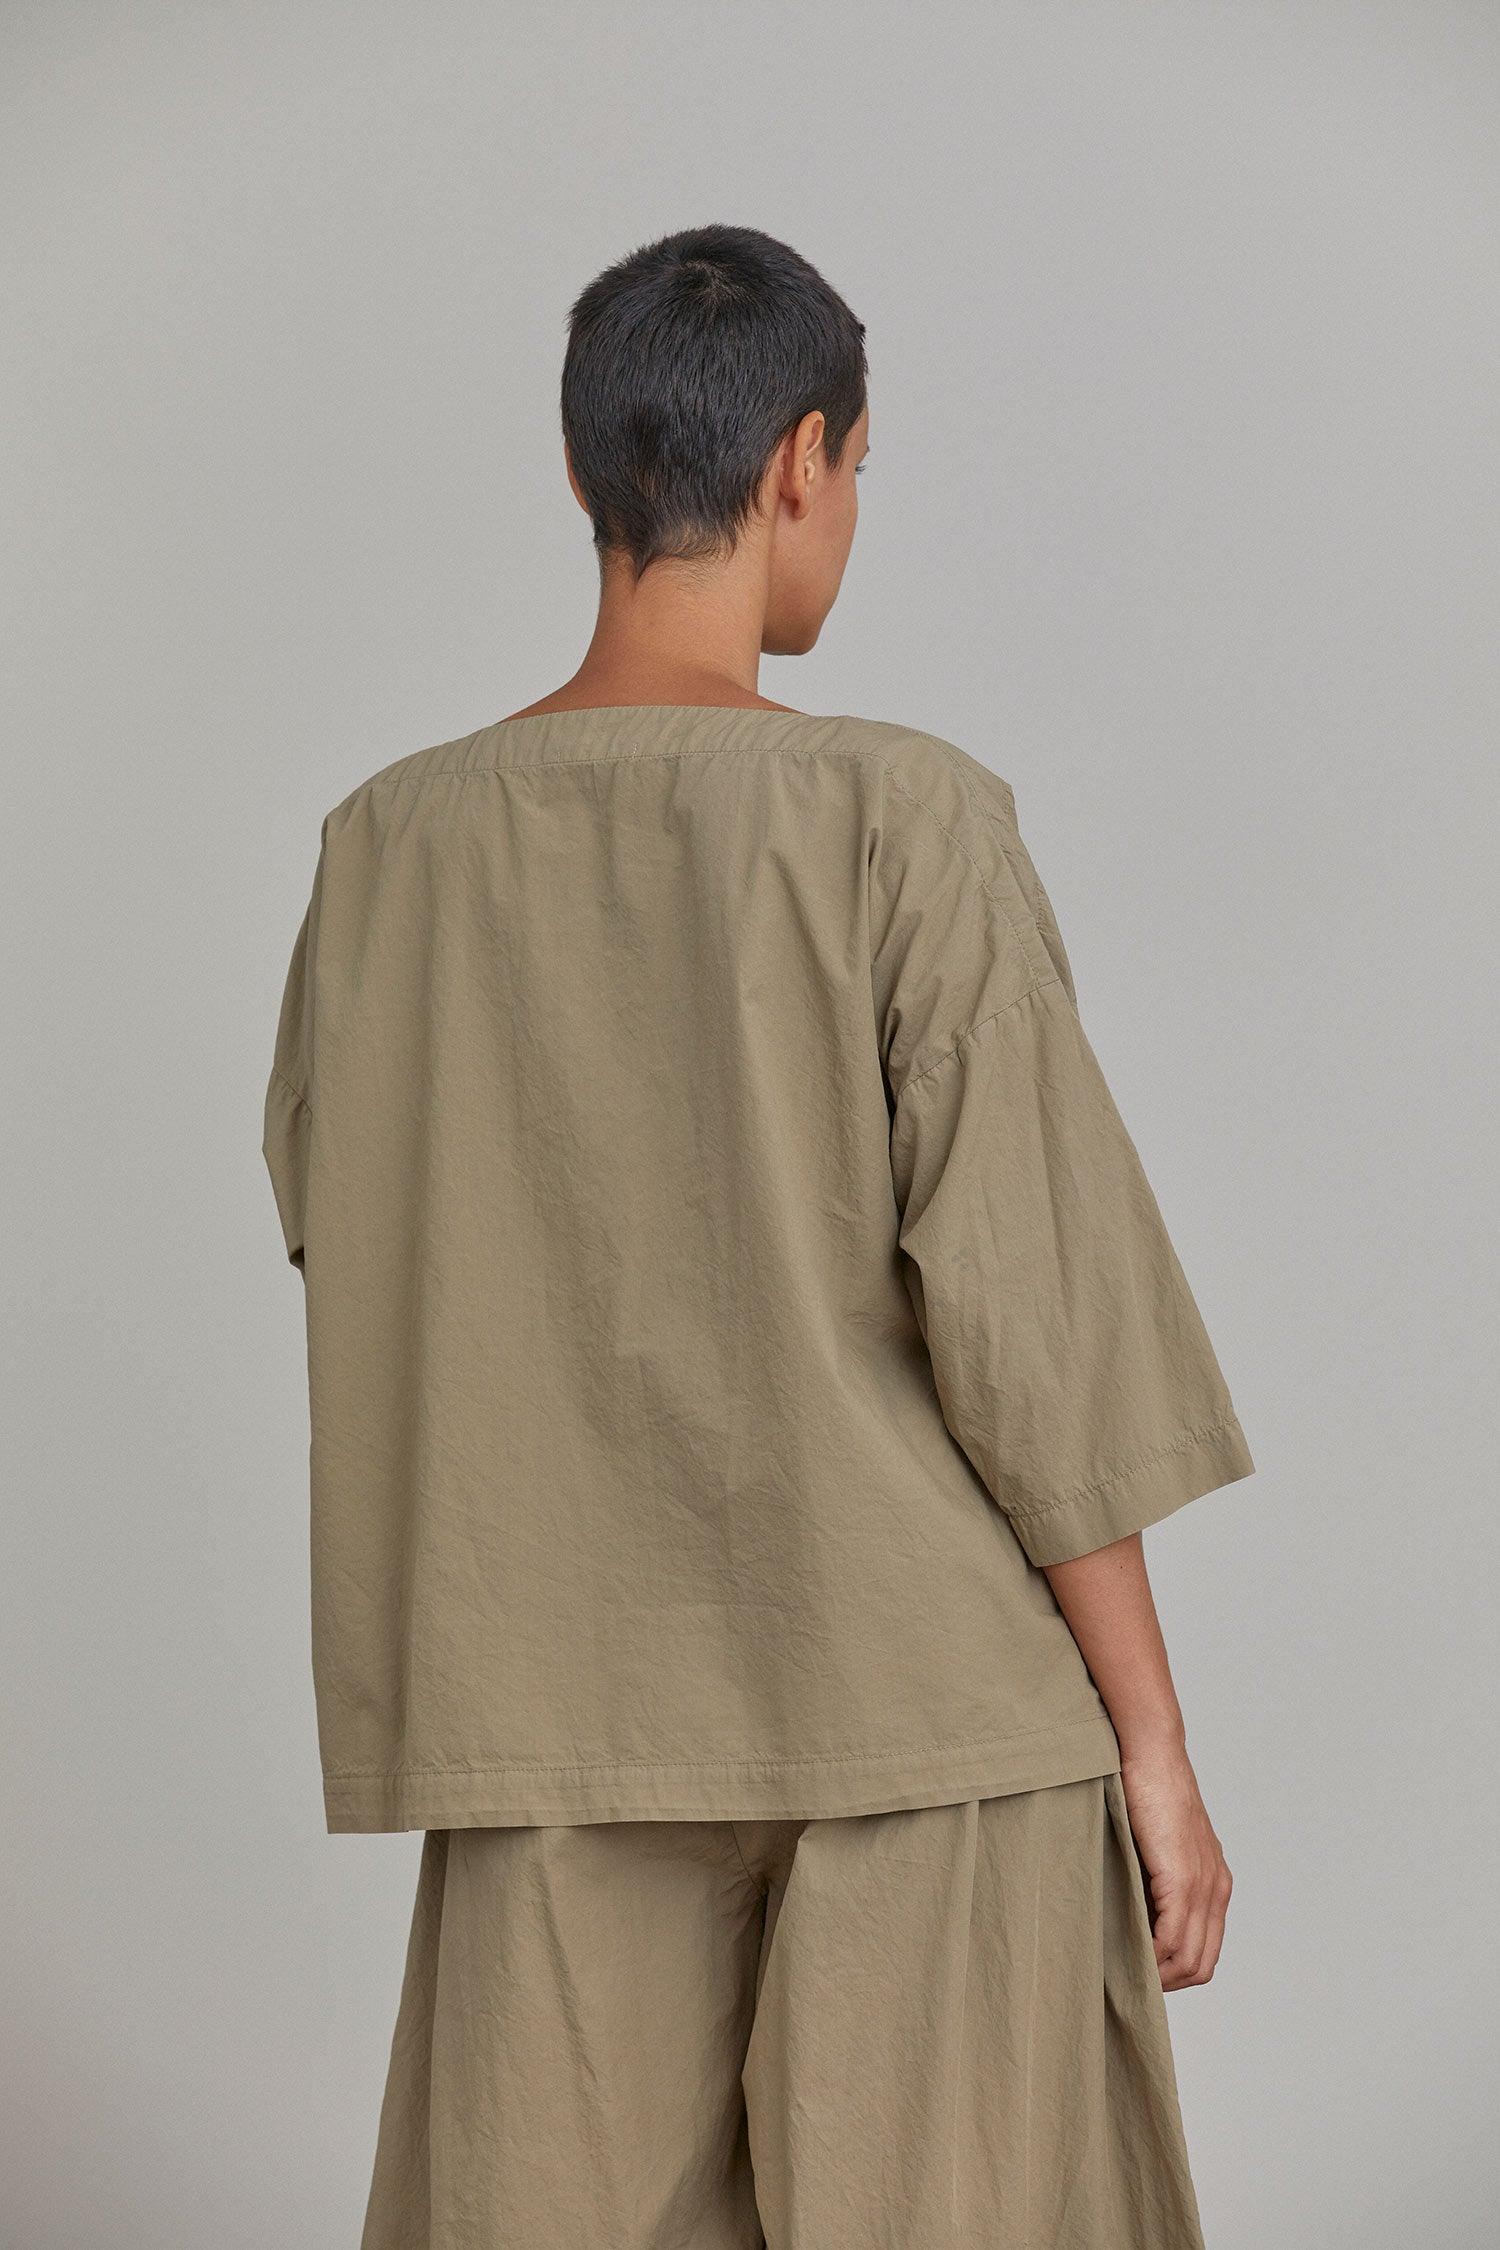 BOAT NECK TOP / C-BT07 / CLAY